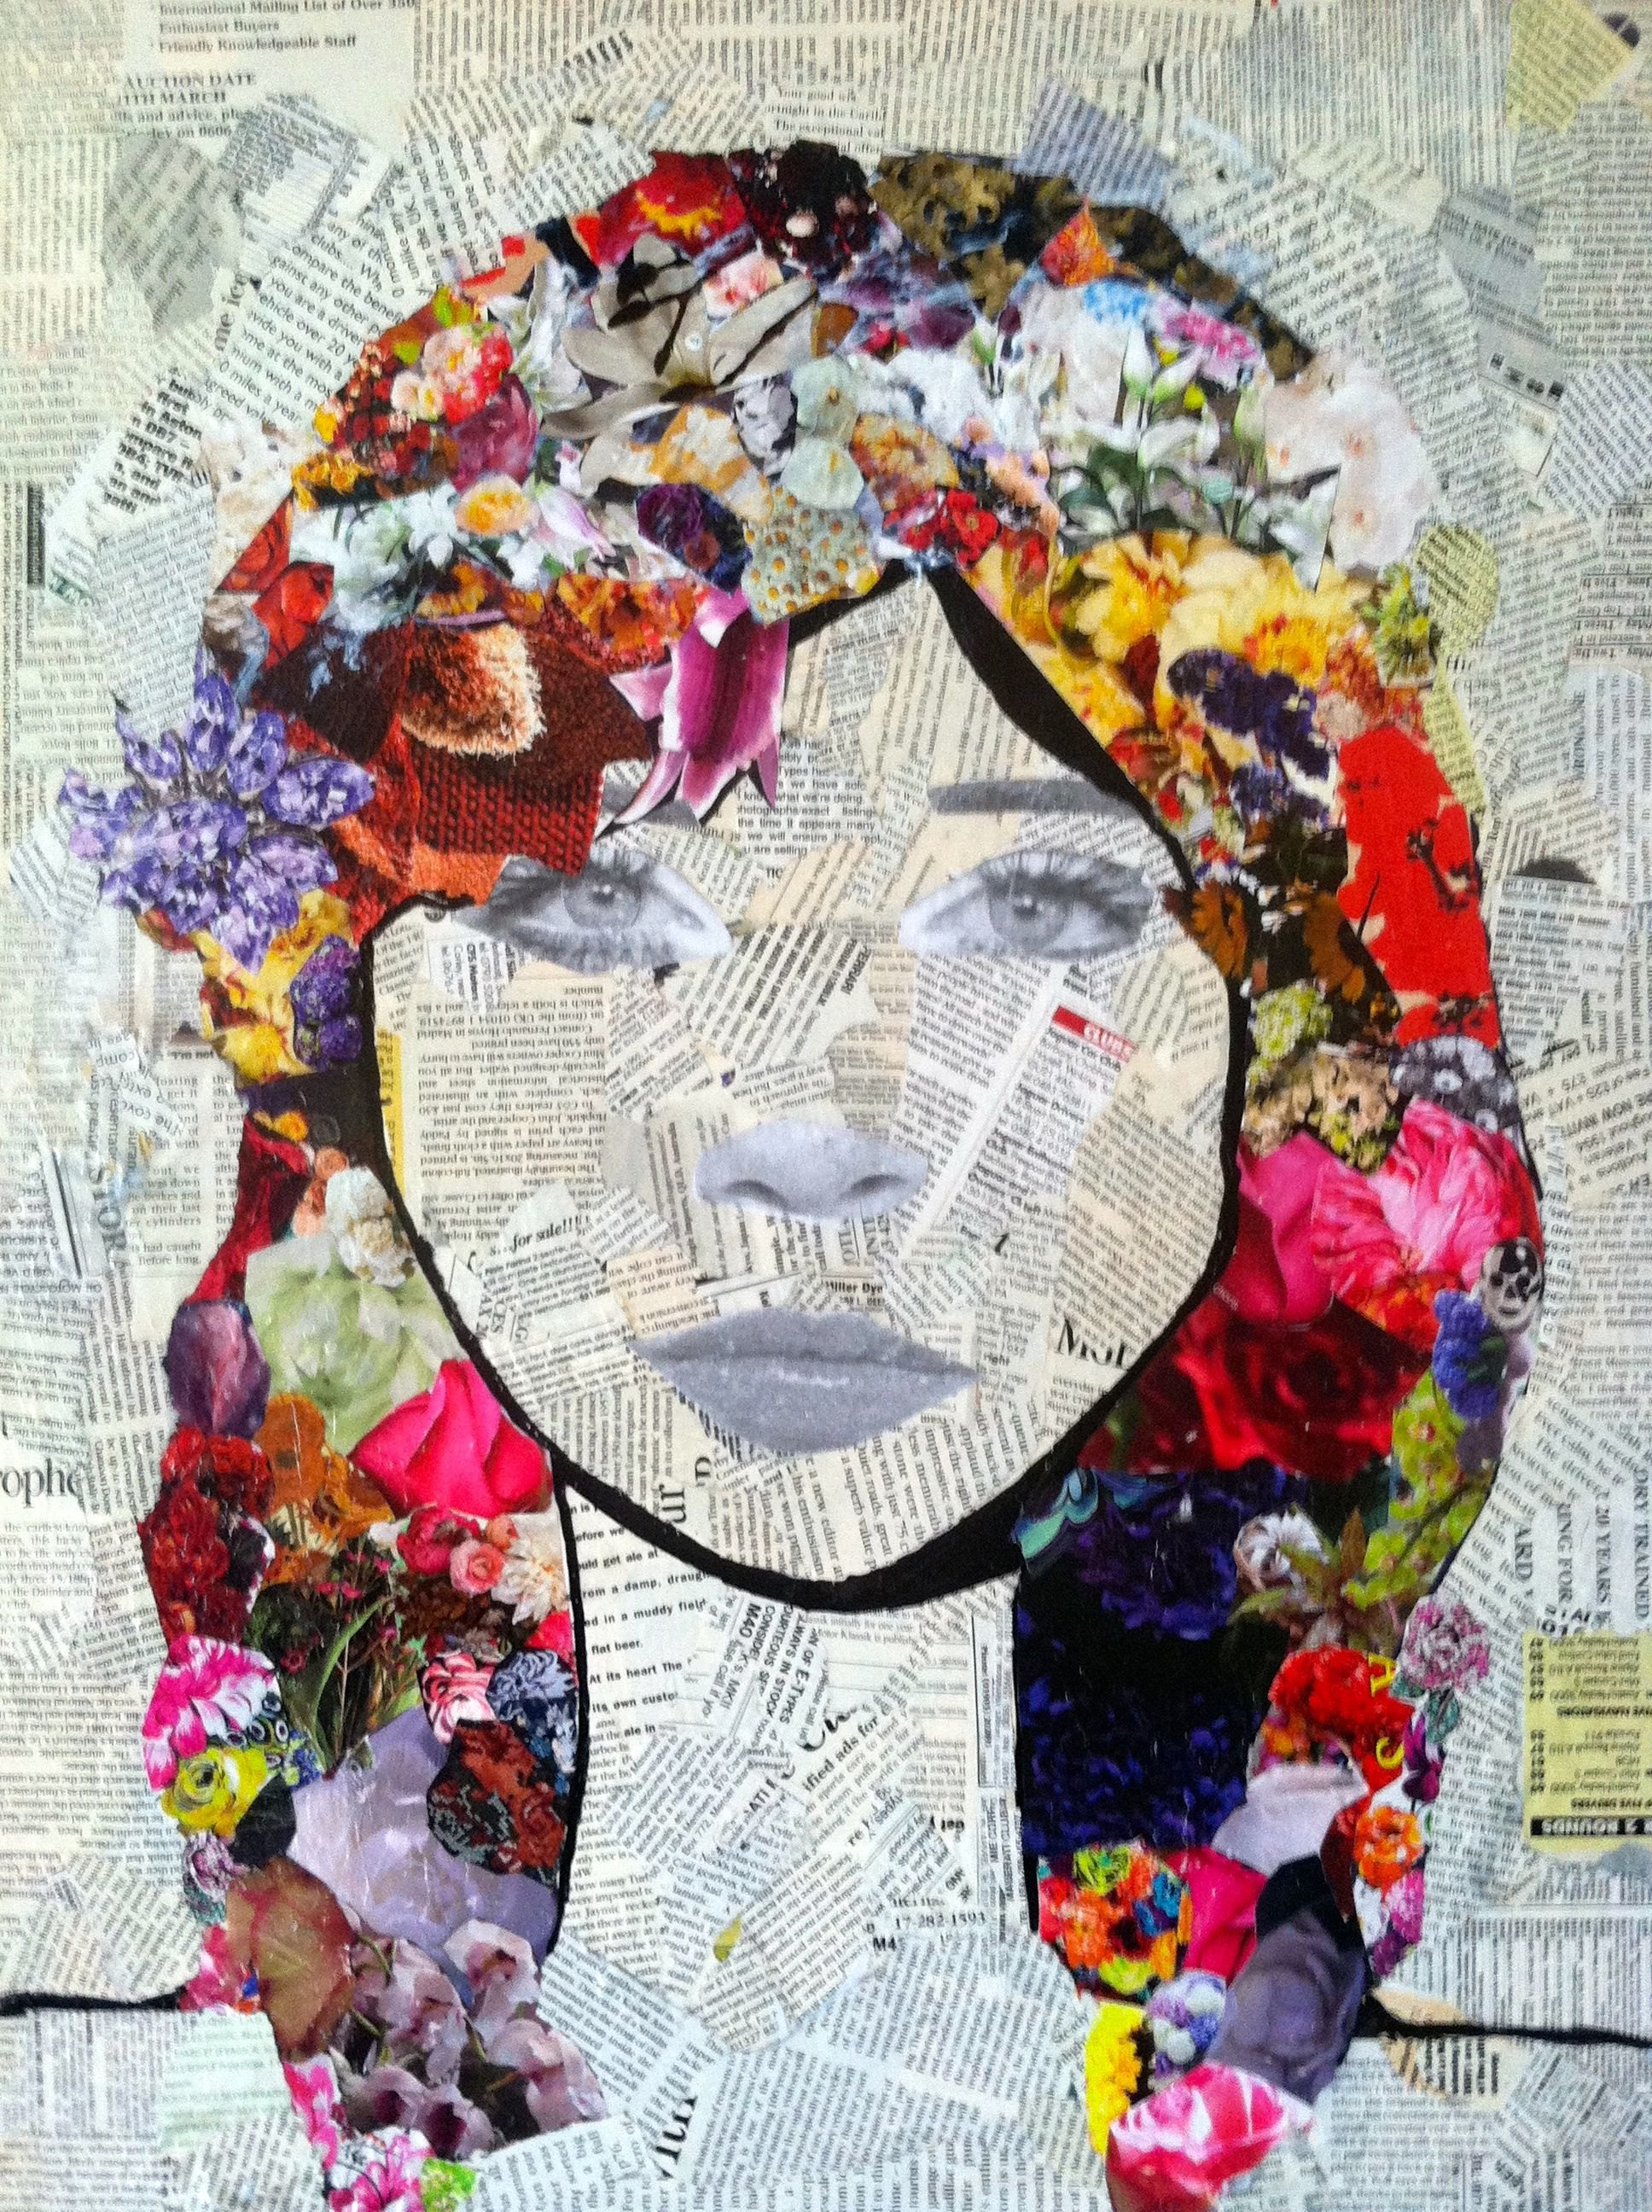 Mixed media art torn newspaper bknd draw portrait on for Pinterest art ideas for adults